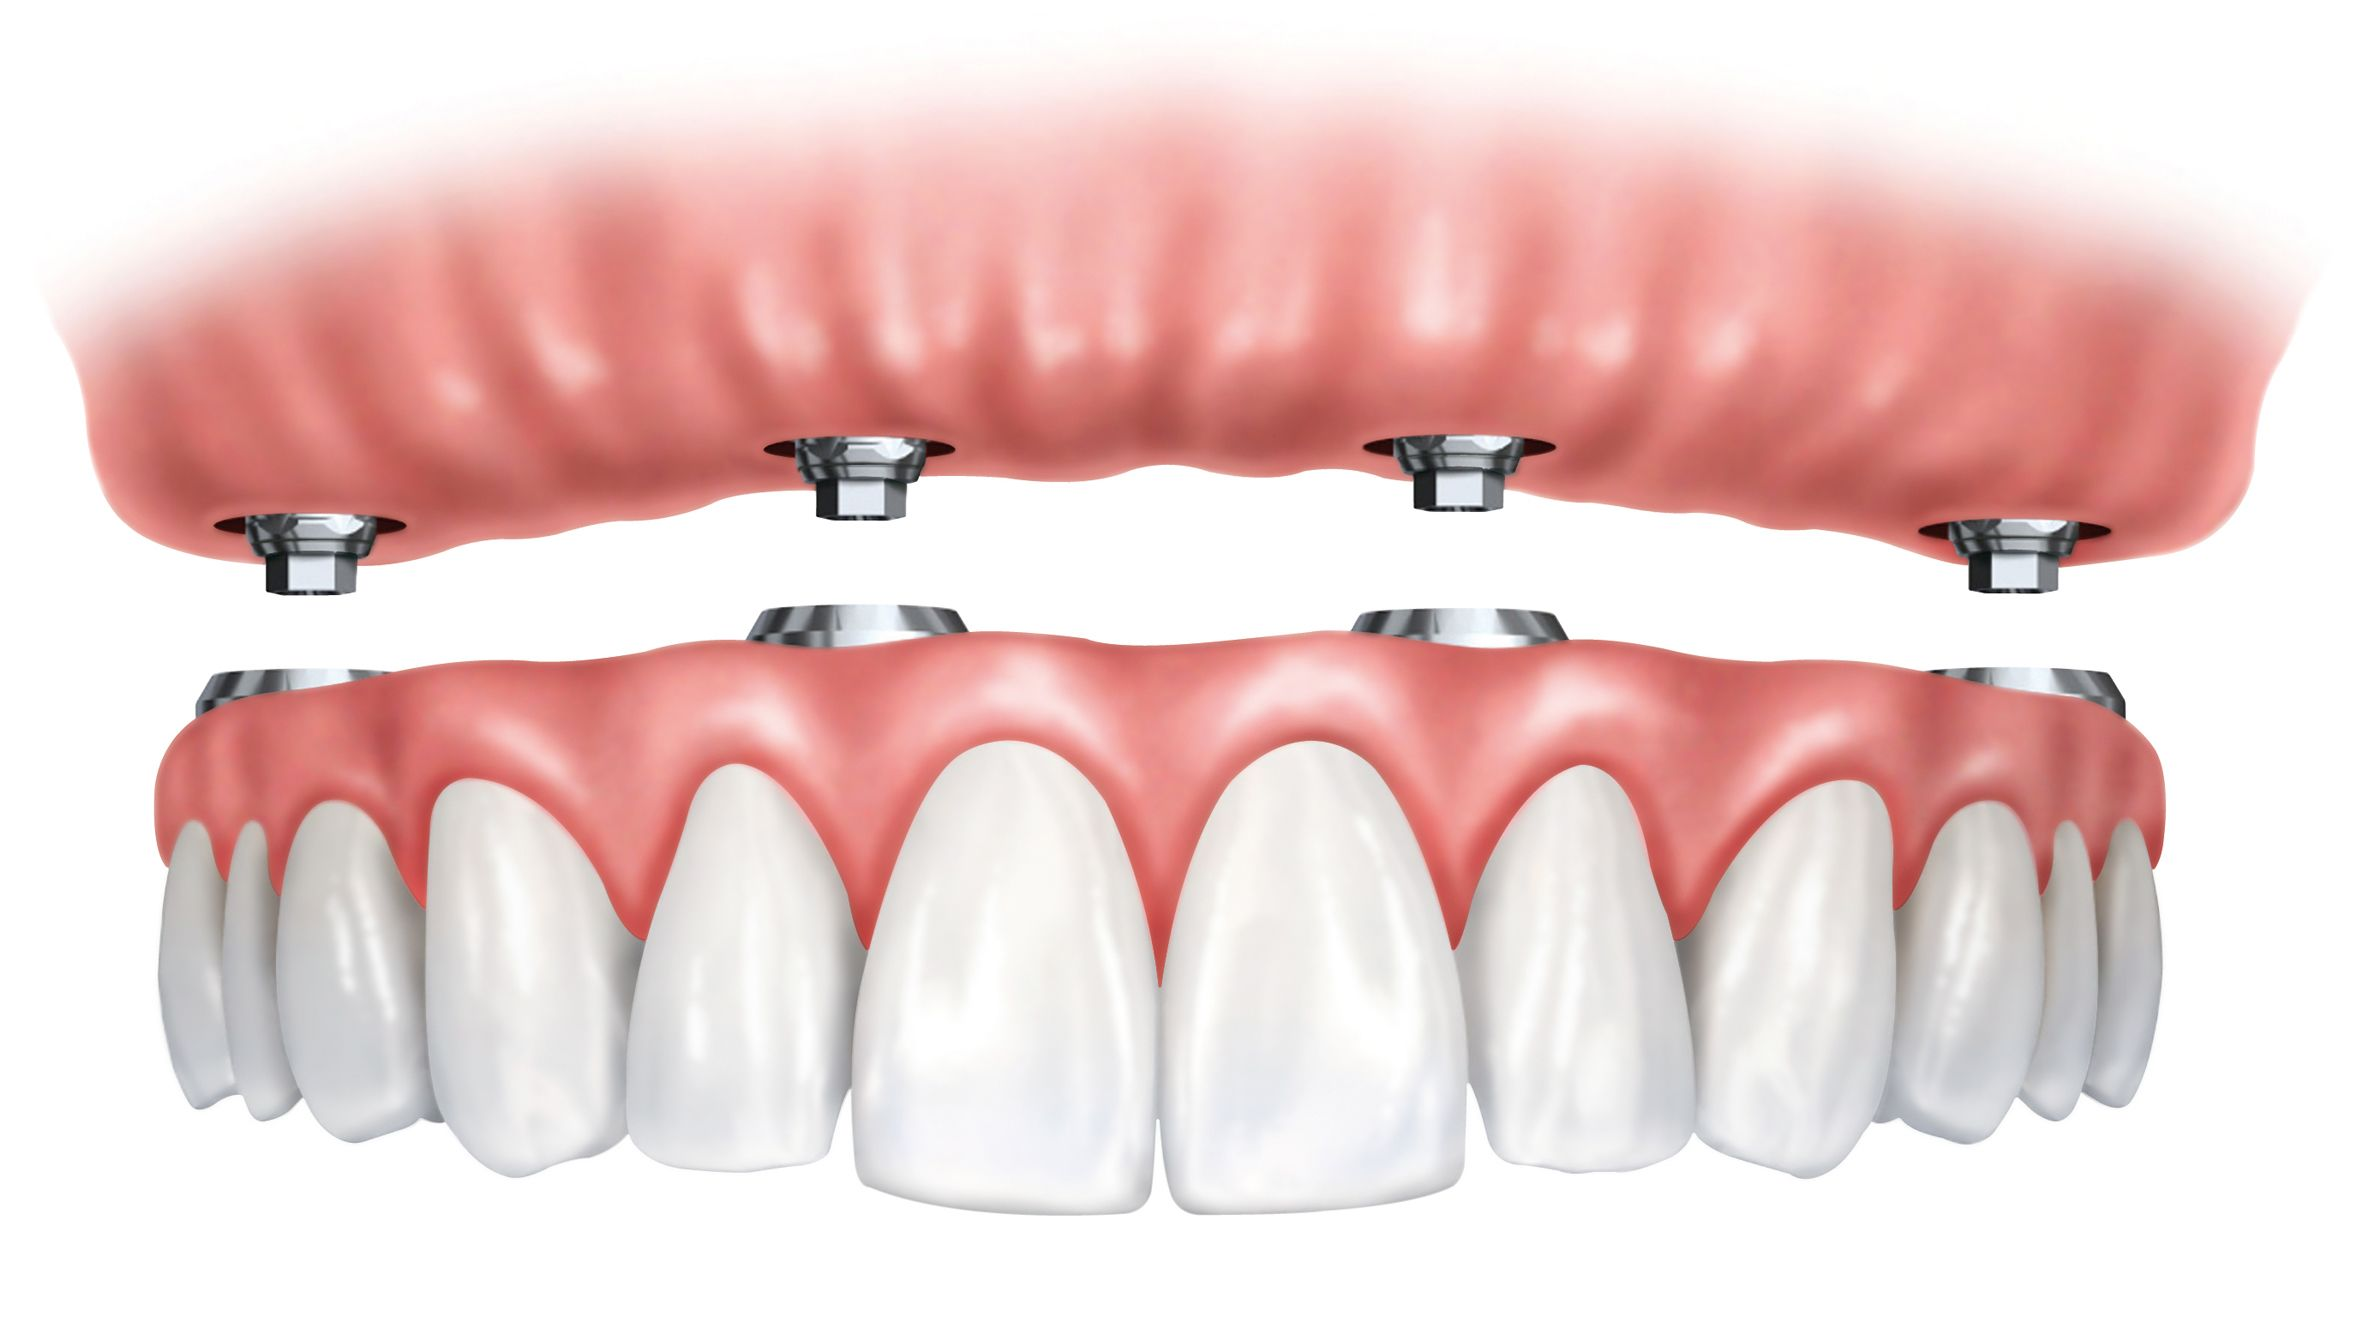 mini dental implants and denture